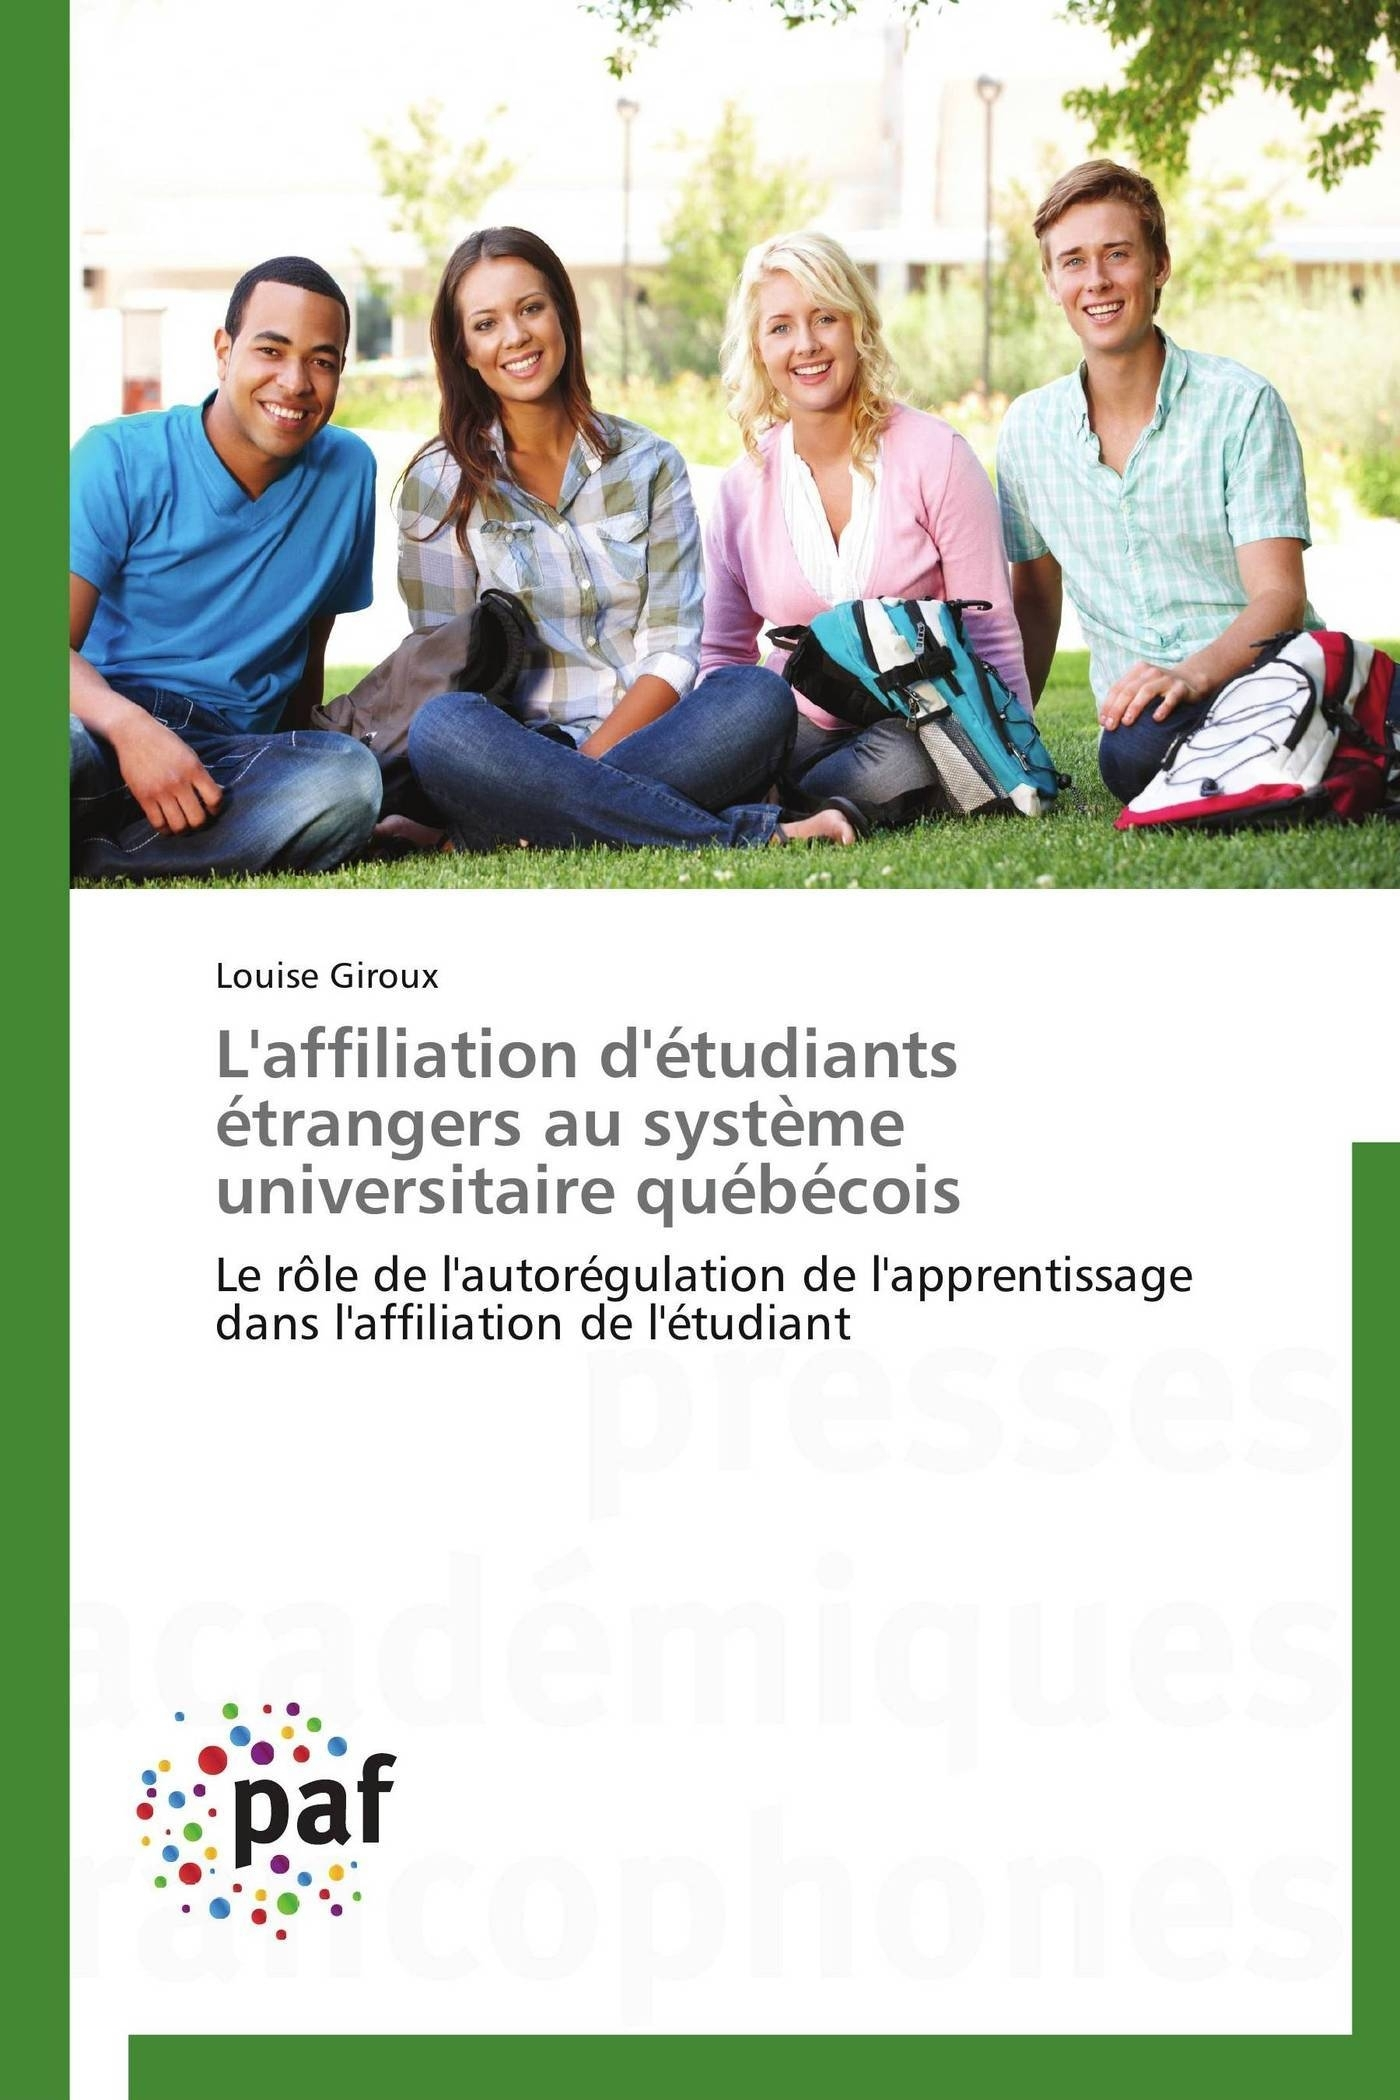 L'AFFILIATION D'ETUDIANTS ETRANGERS AU SYSTEME UNIVERSITAIRE QUEBECOIS